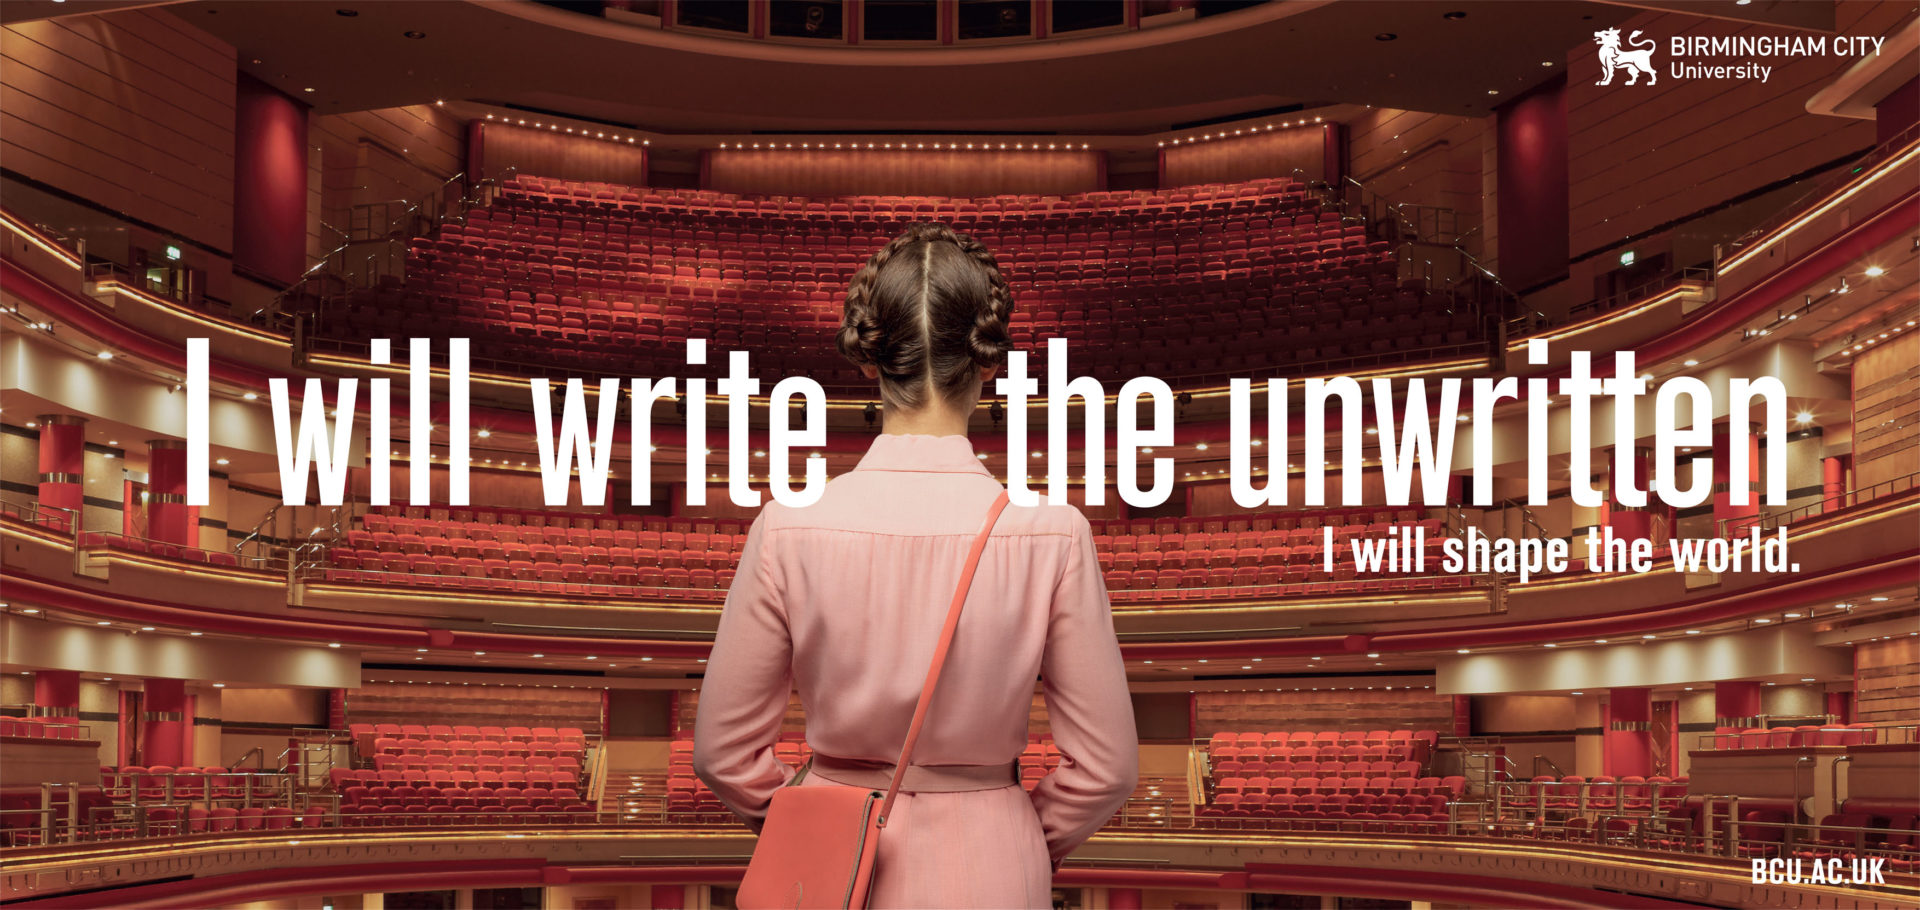 Chapter Agency West Wythall West Midlands – woman in a theatre – BCU Birmingham City University – Symphony Hall – Wes Anderson – Shaw & Shaw -Shaw and Shaw Advertising photographers photographer photography